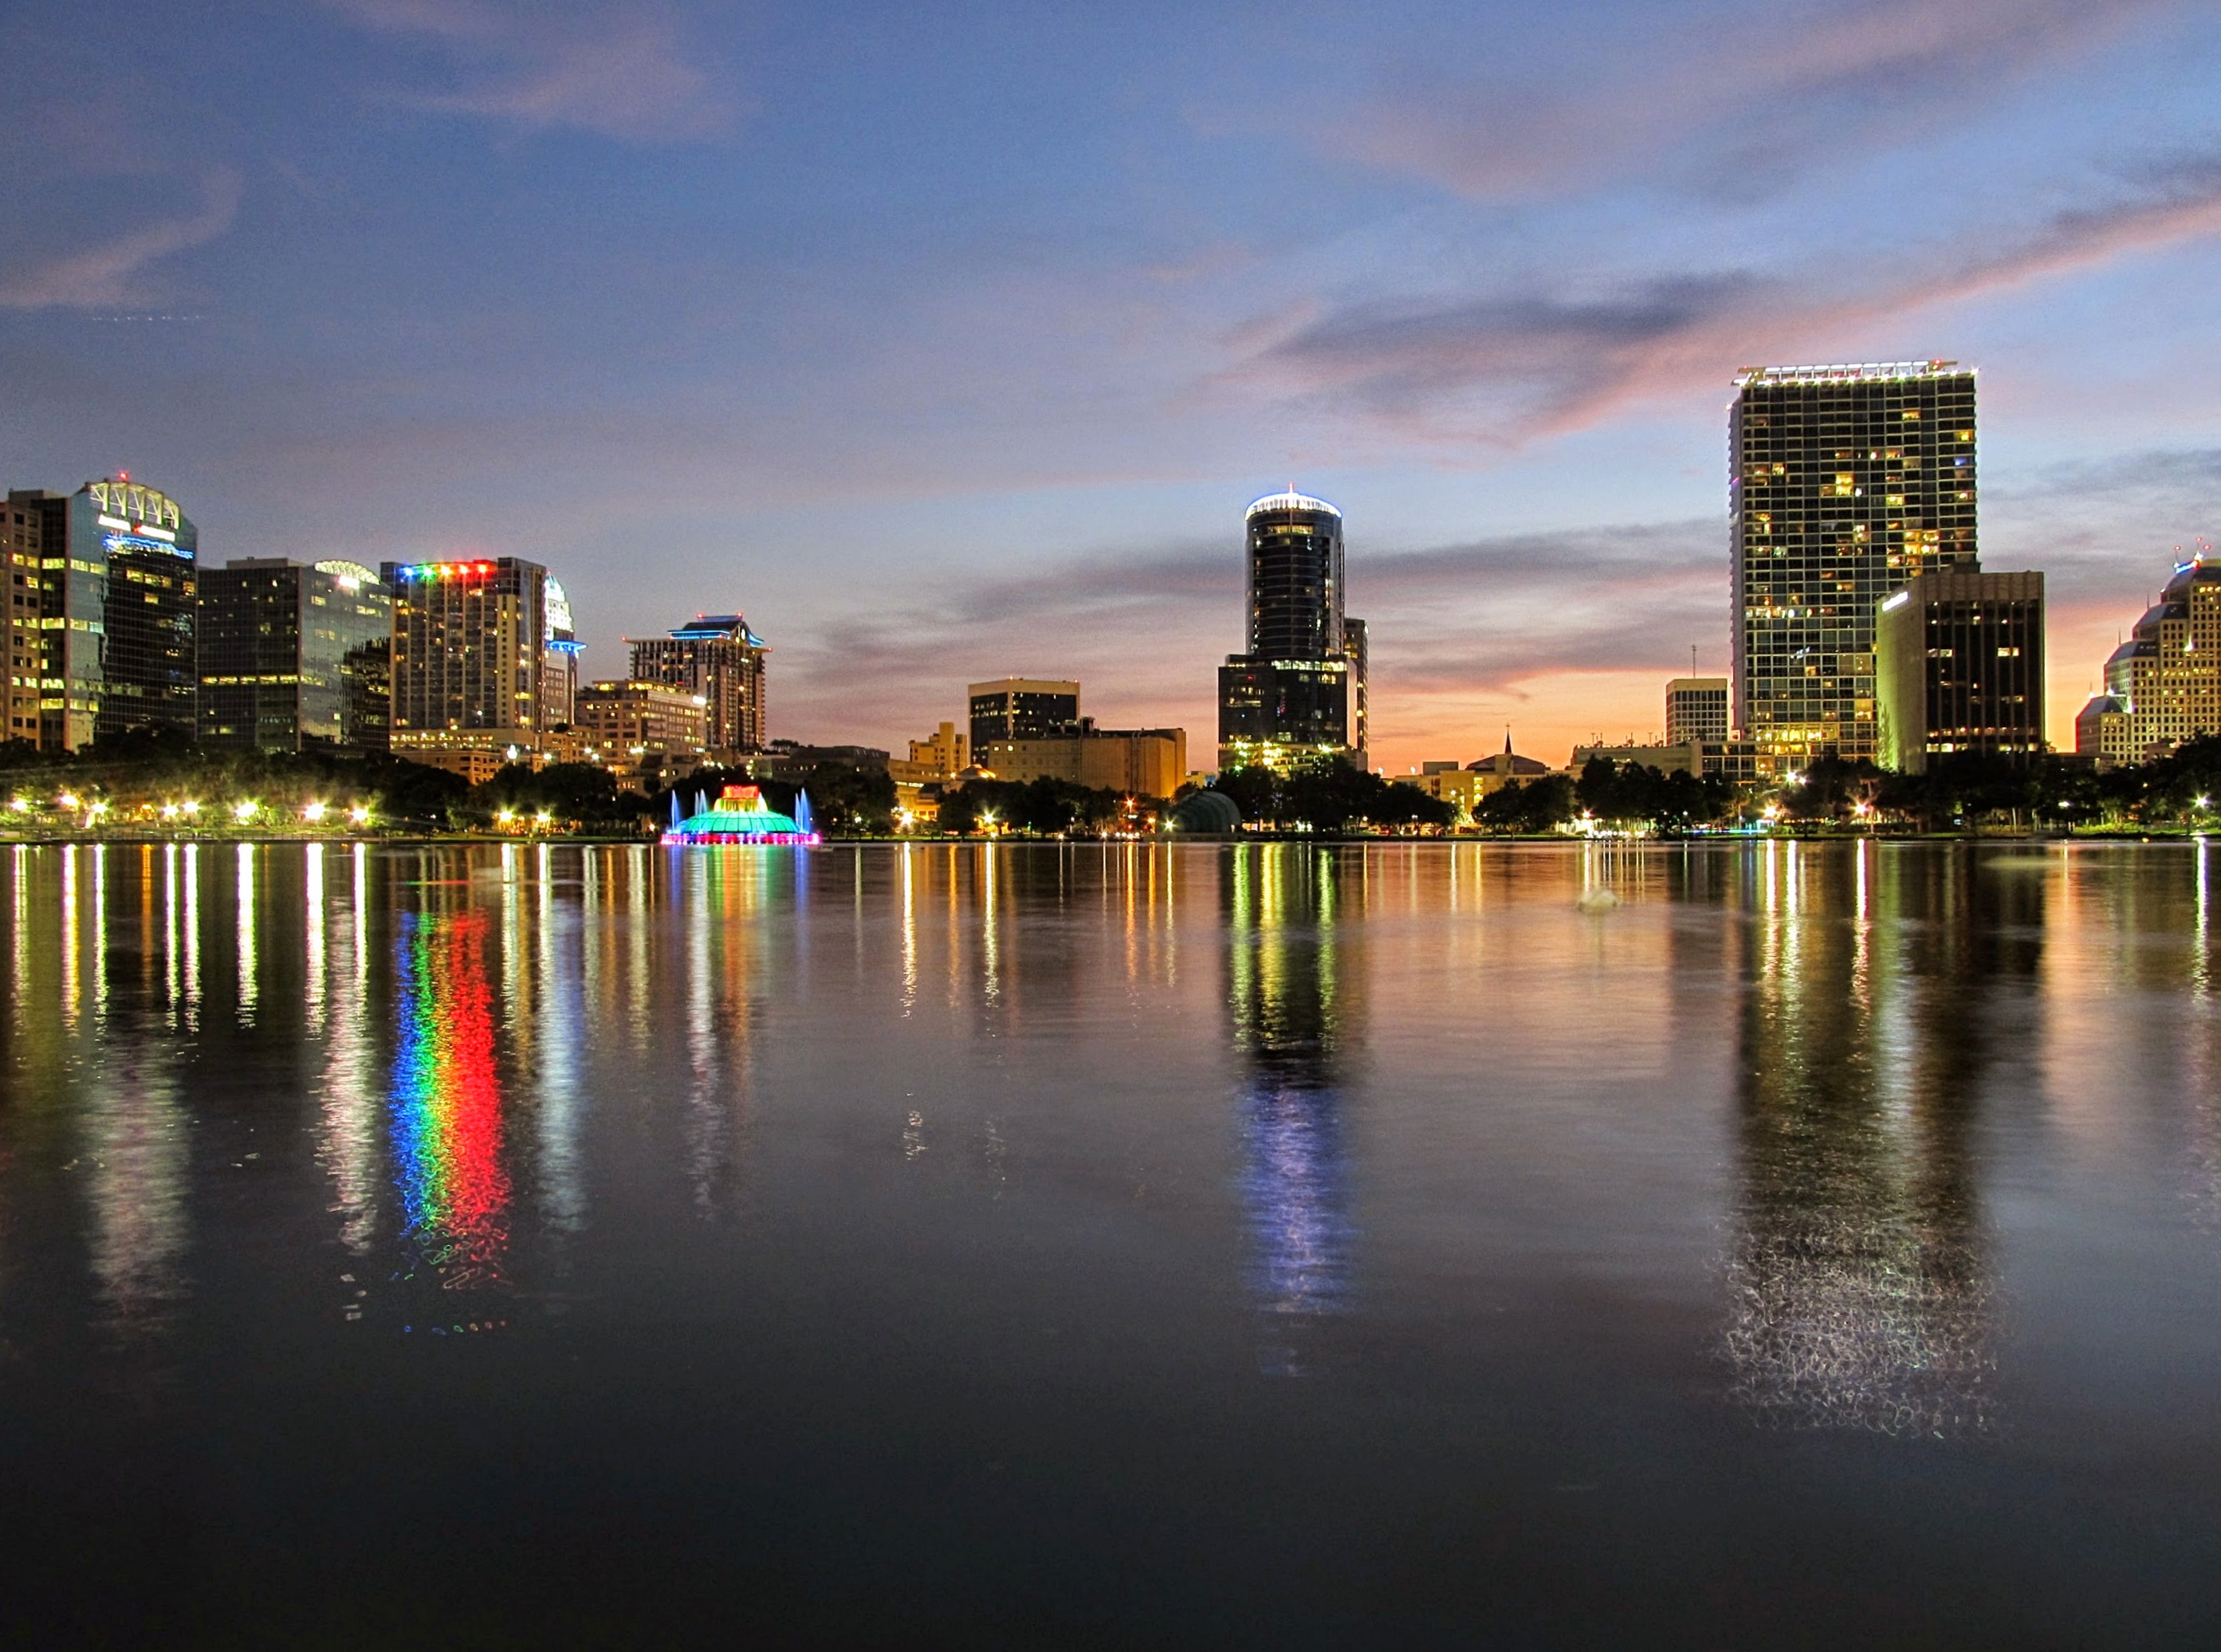 Lake_Eola_Park_in_Orlando_01